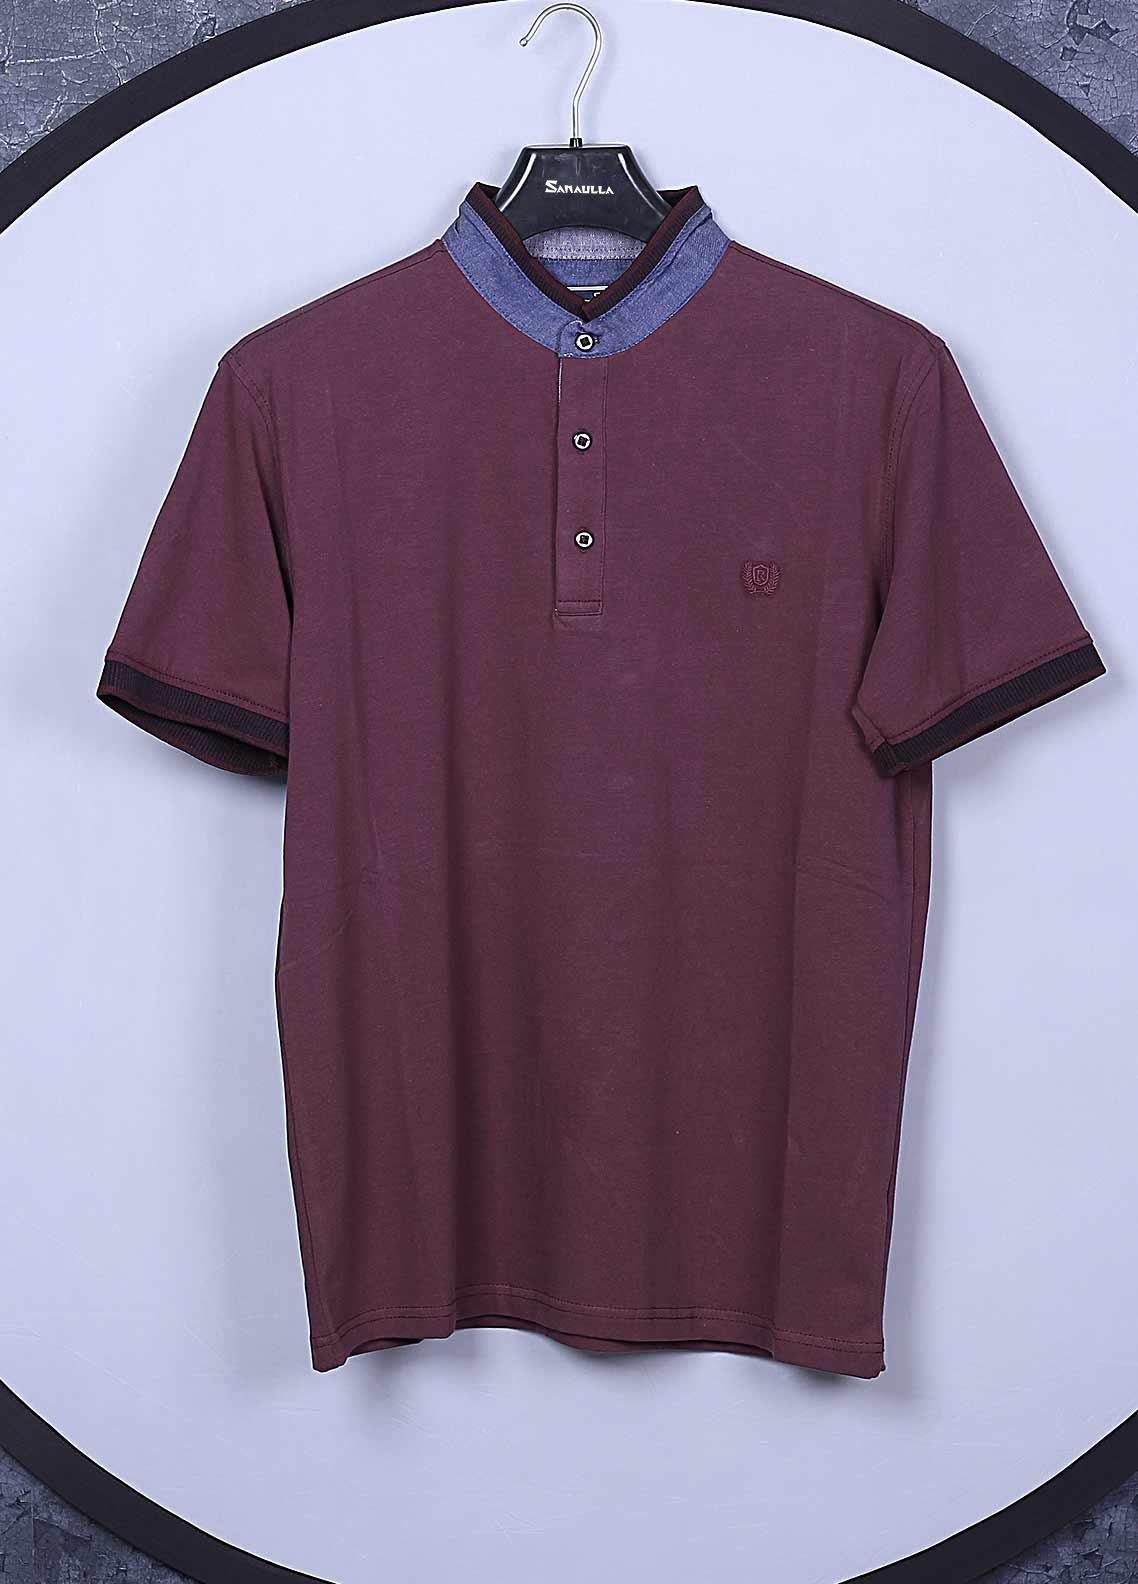 Sanaulla Exclusive Range Cotton Casual T-Shirts for Mens - 5368 Maroon